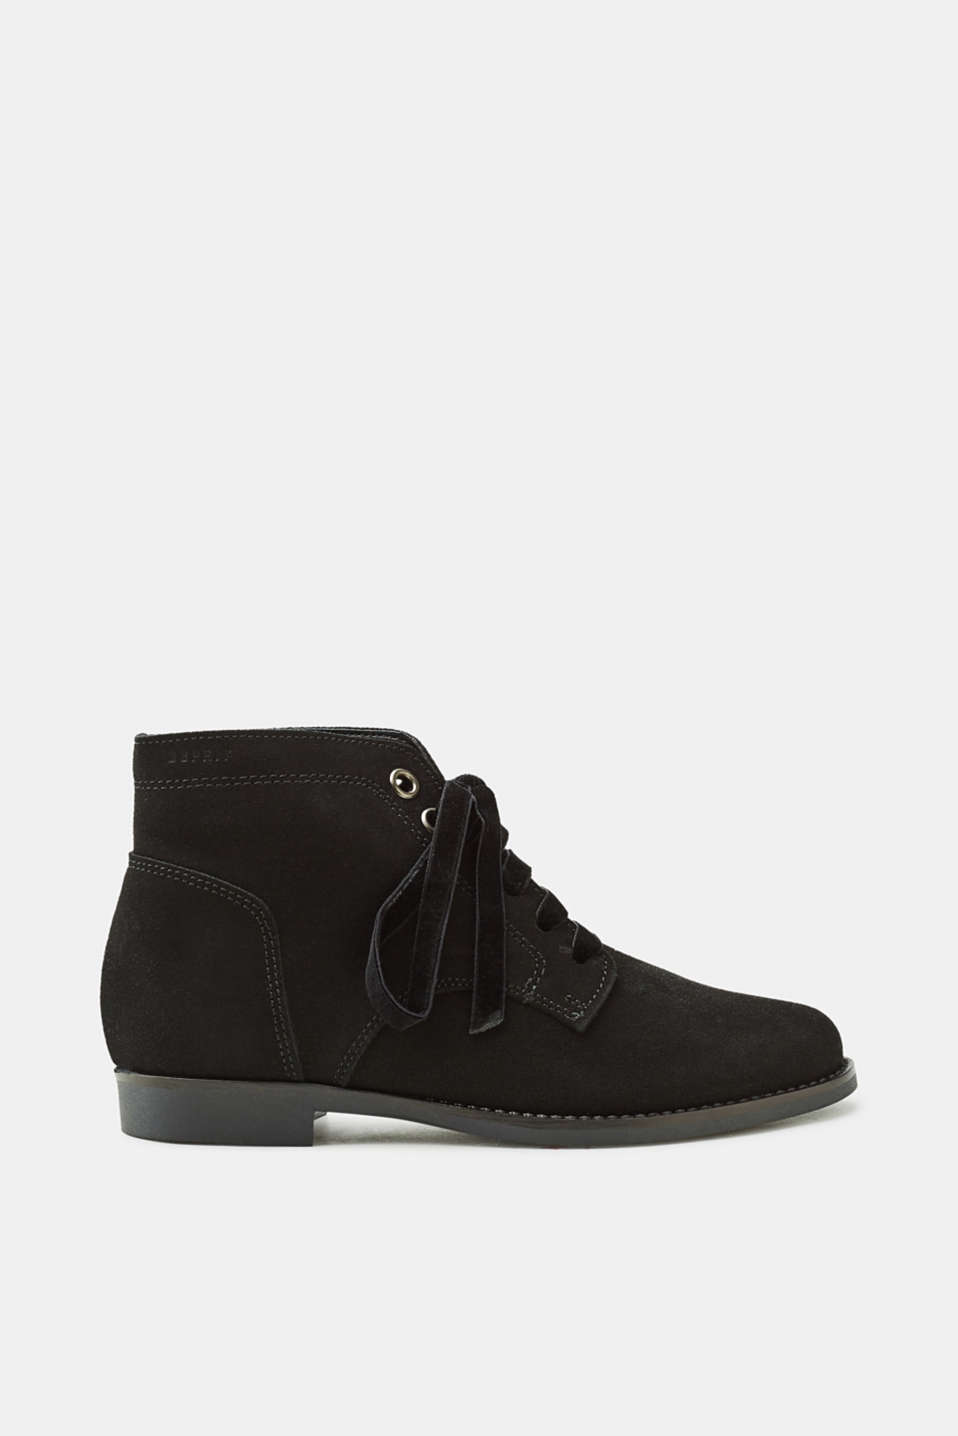 Esprit - Suede lace-up boots